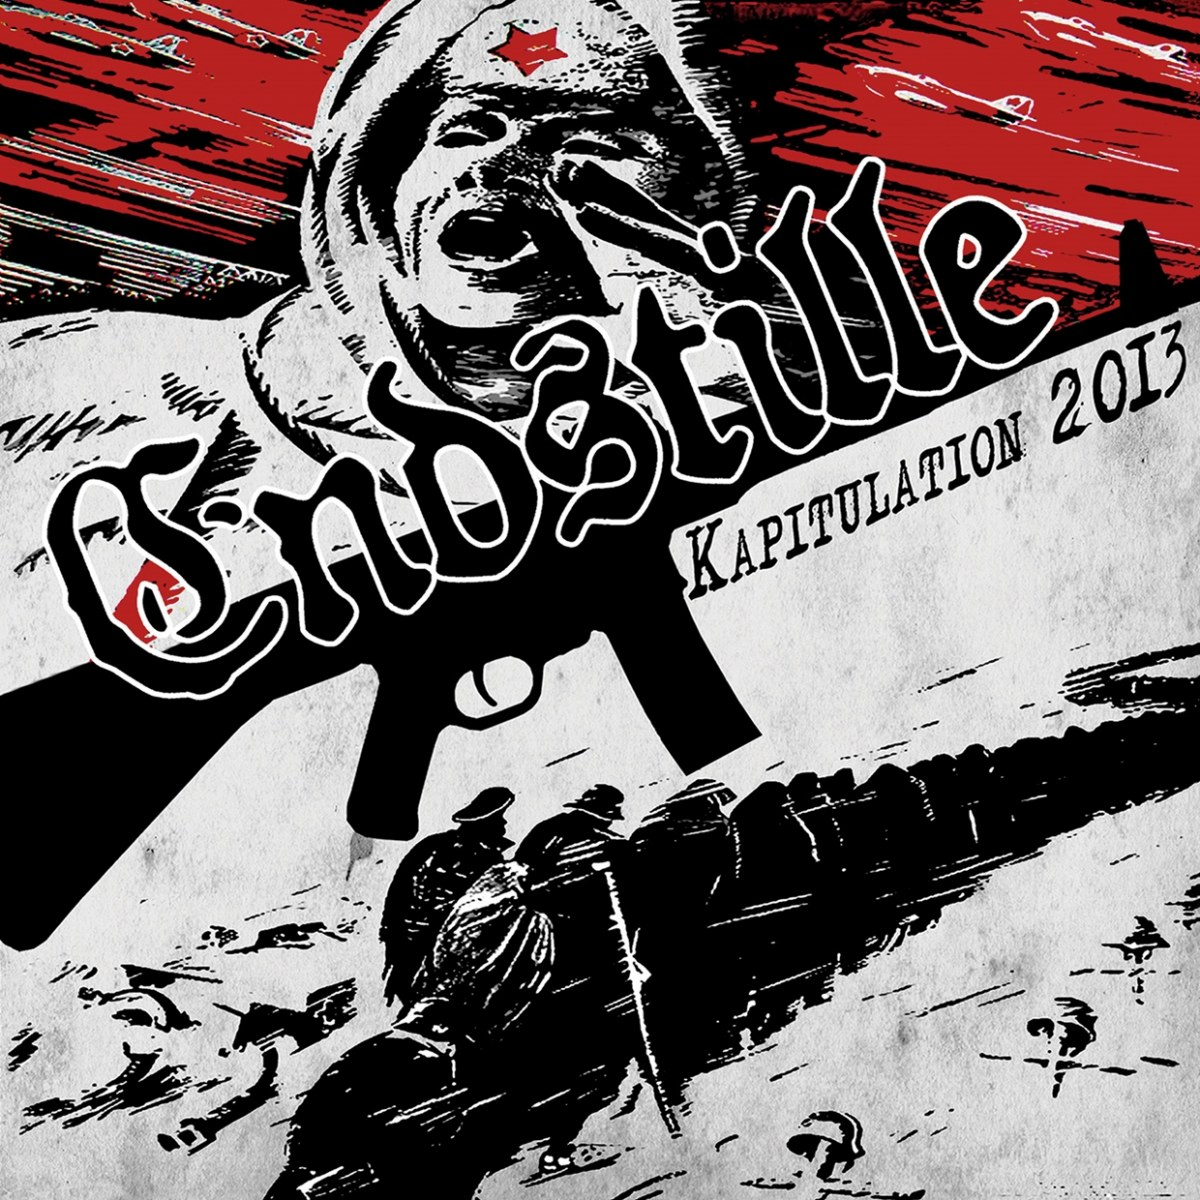 Review for Endstille - Kapitulation 2013